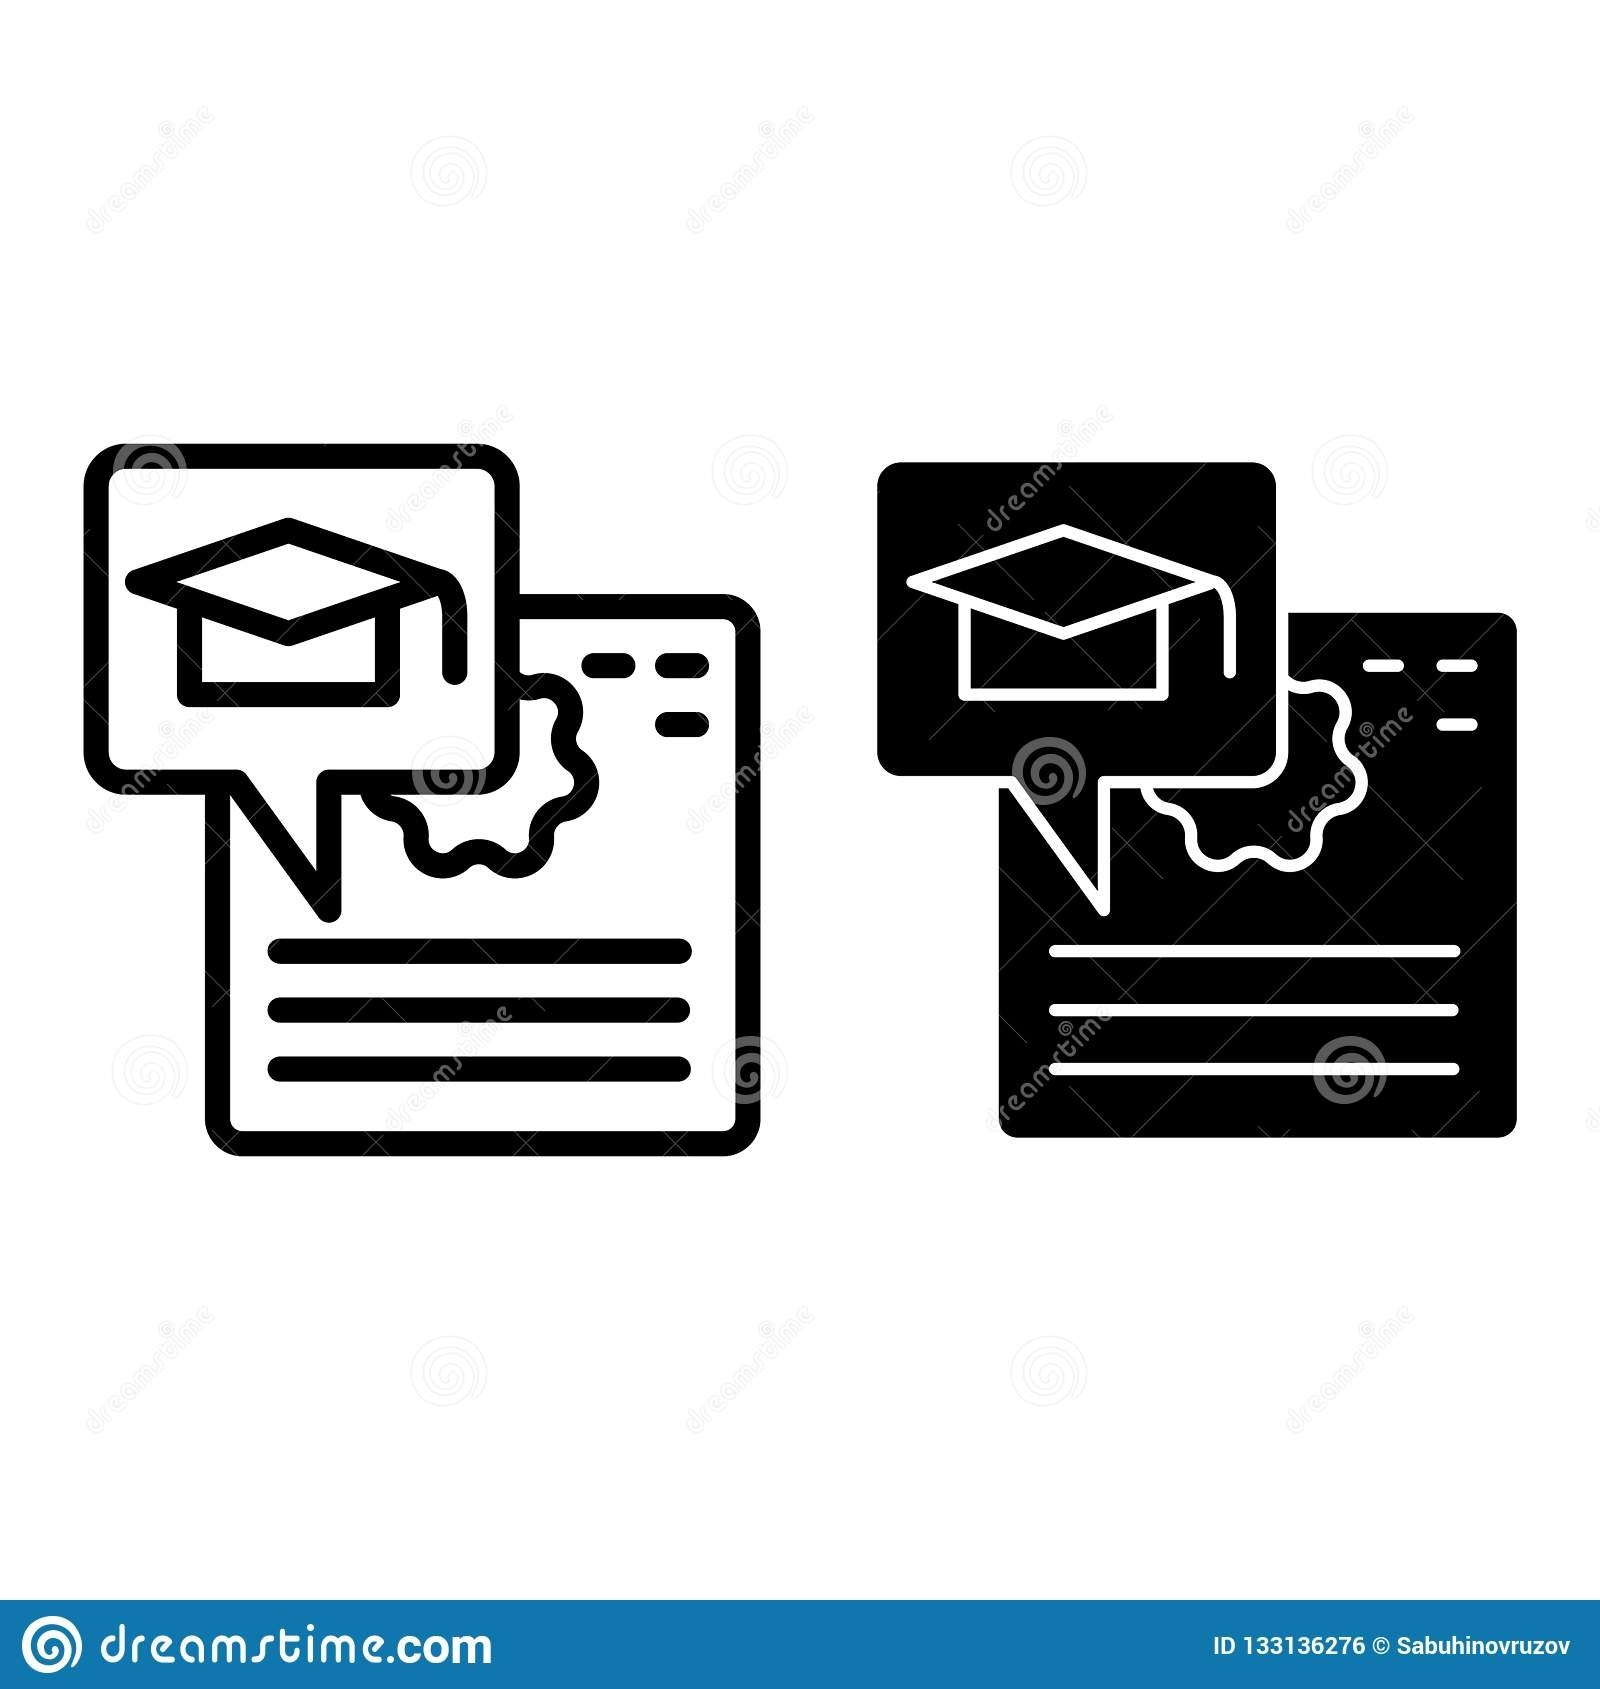 Diploma Line And Glyph Icon. Certificate And Graduate Hat-Glyphicon Icon Is Blank